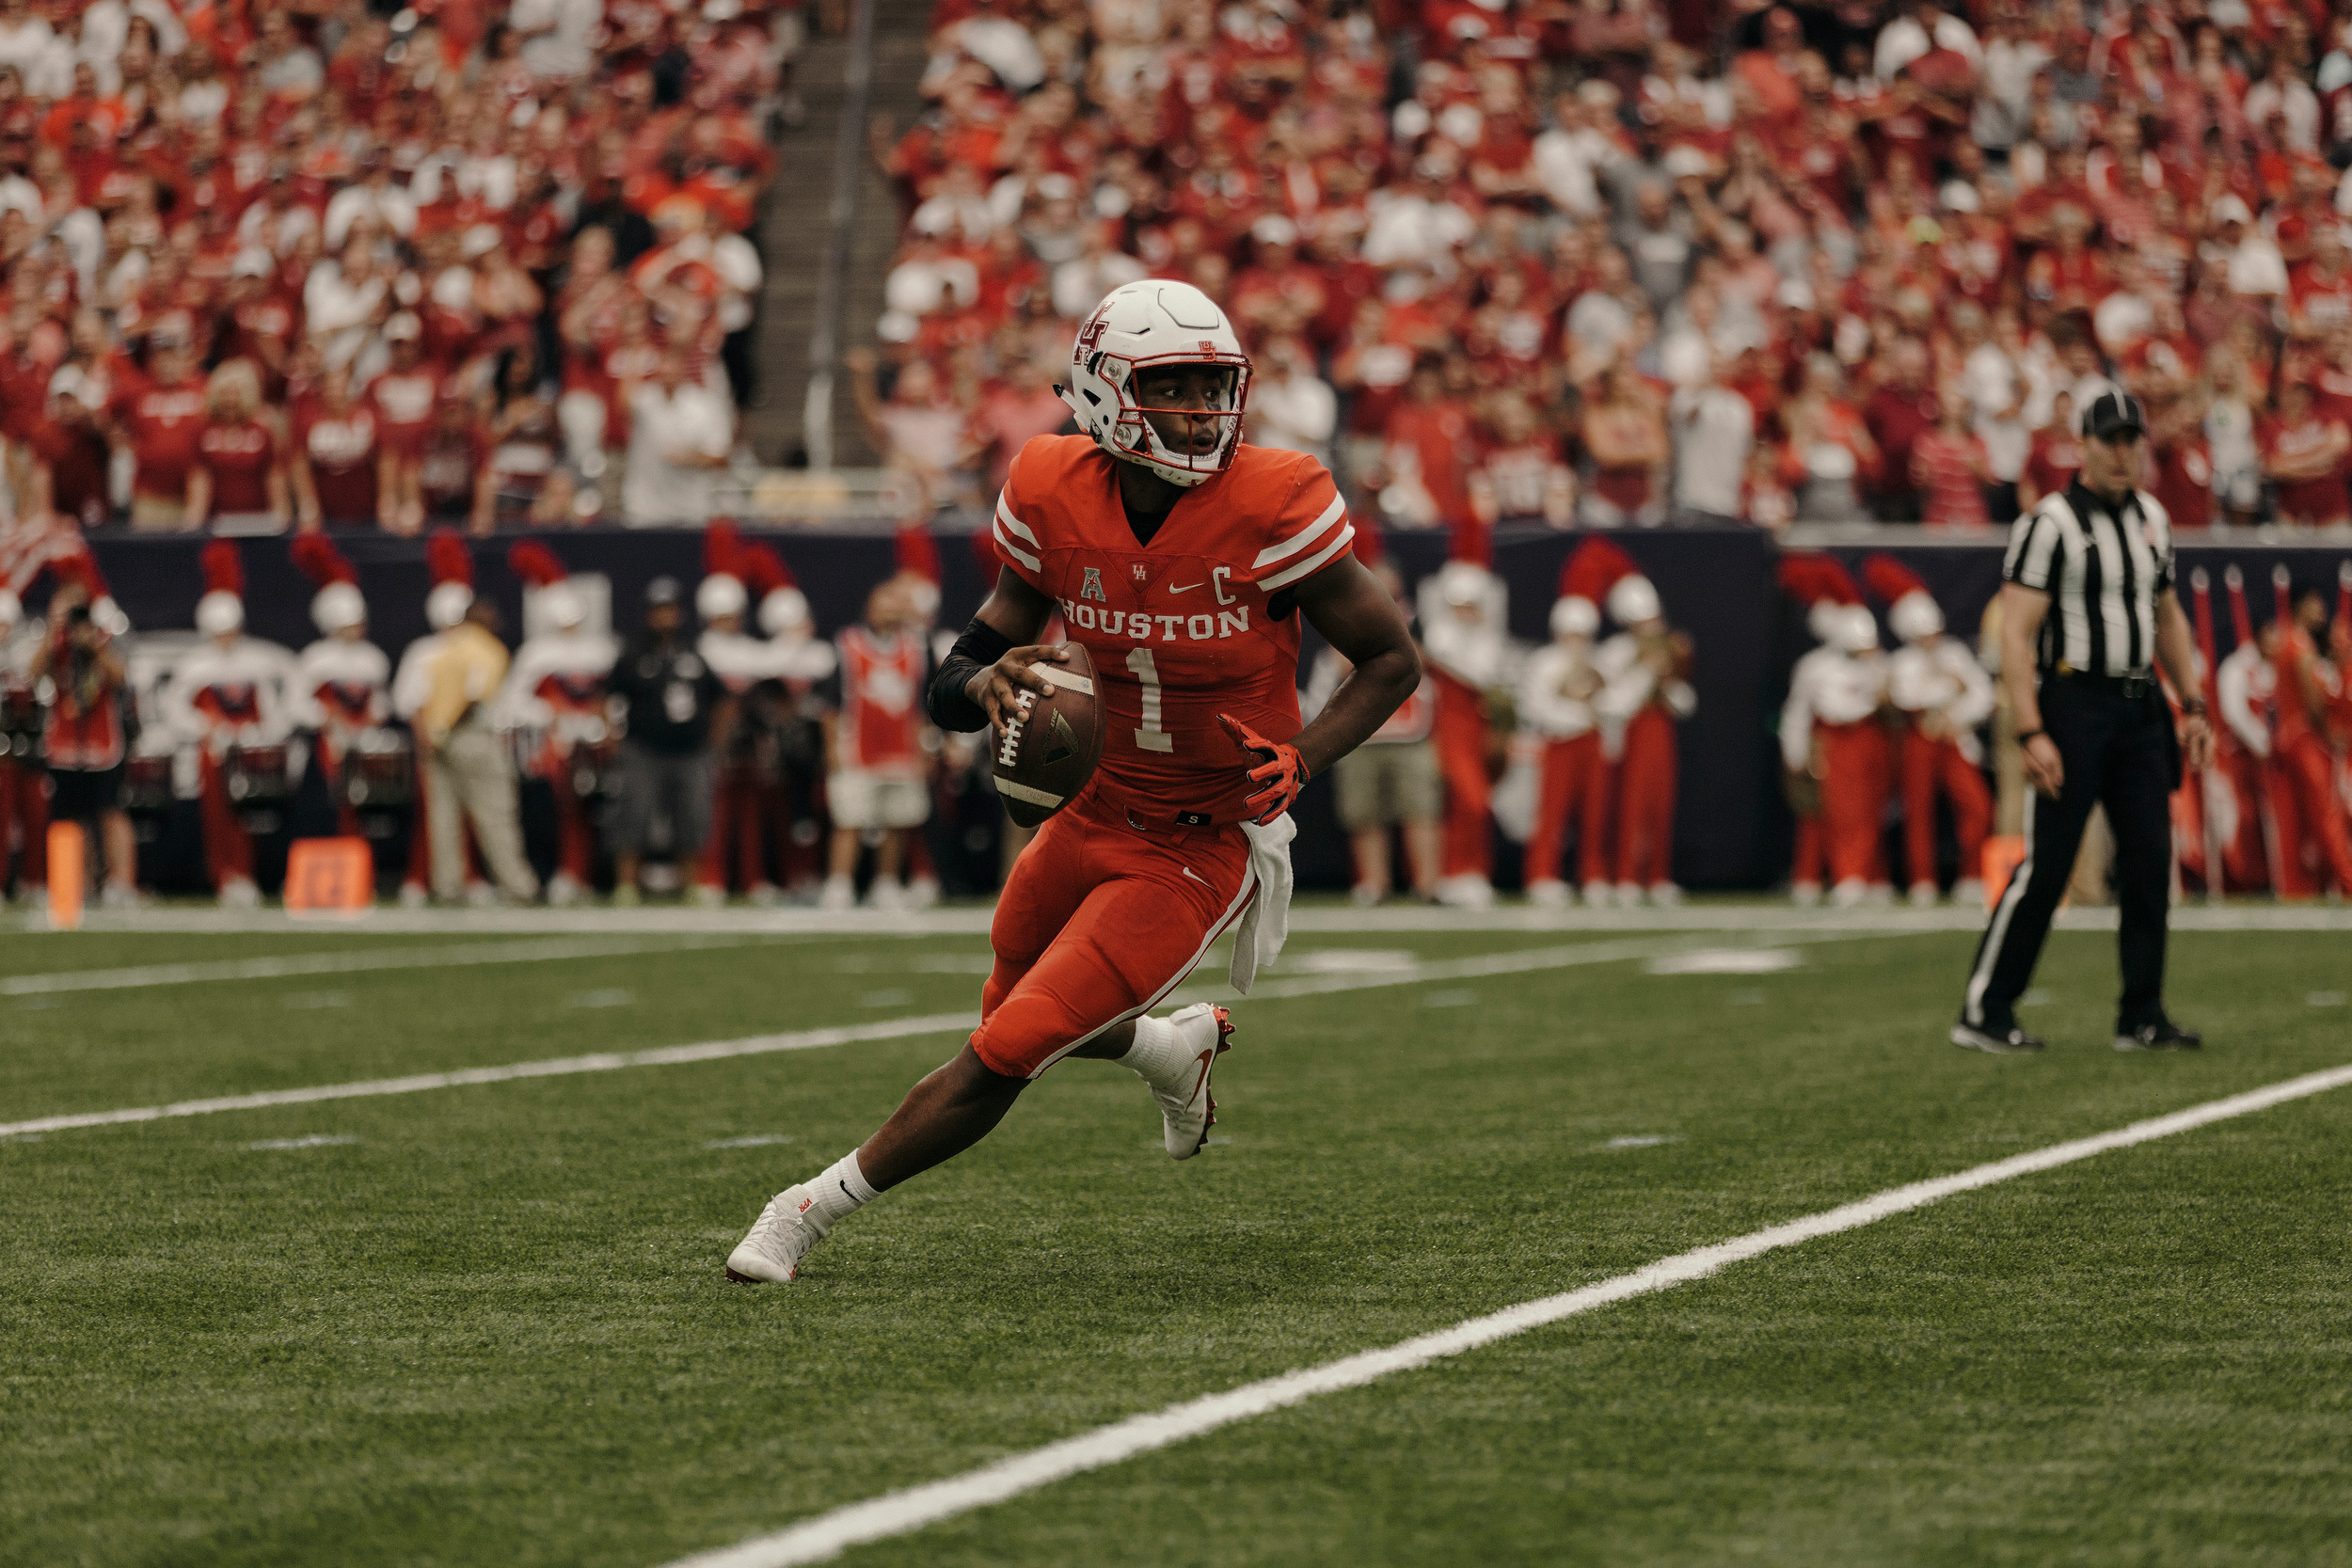 University of Houston quarterback, Greg Ward Jr., scrambles out of the pocket during the first half. Todd Spoth for The New York Times.